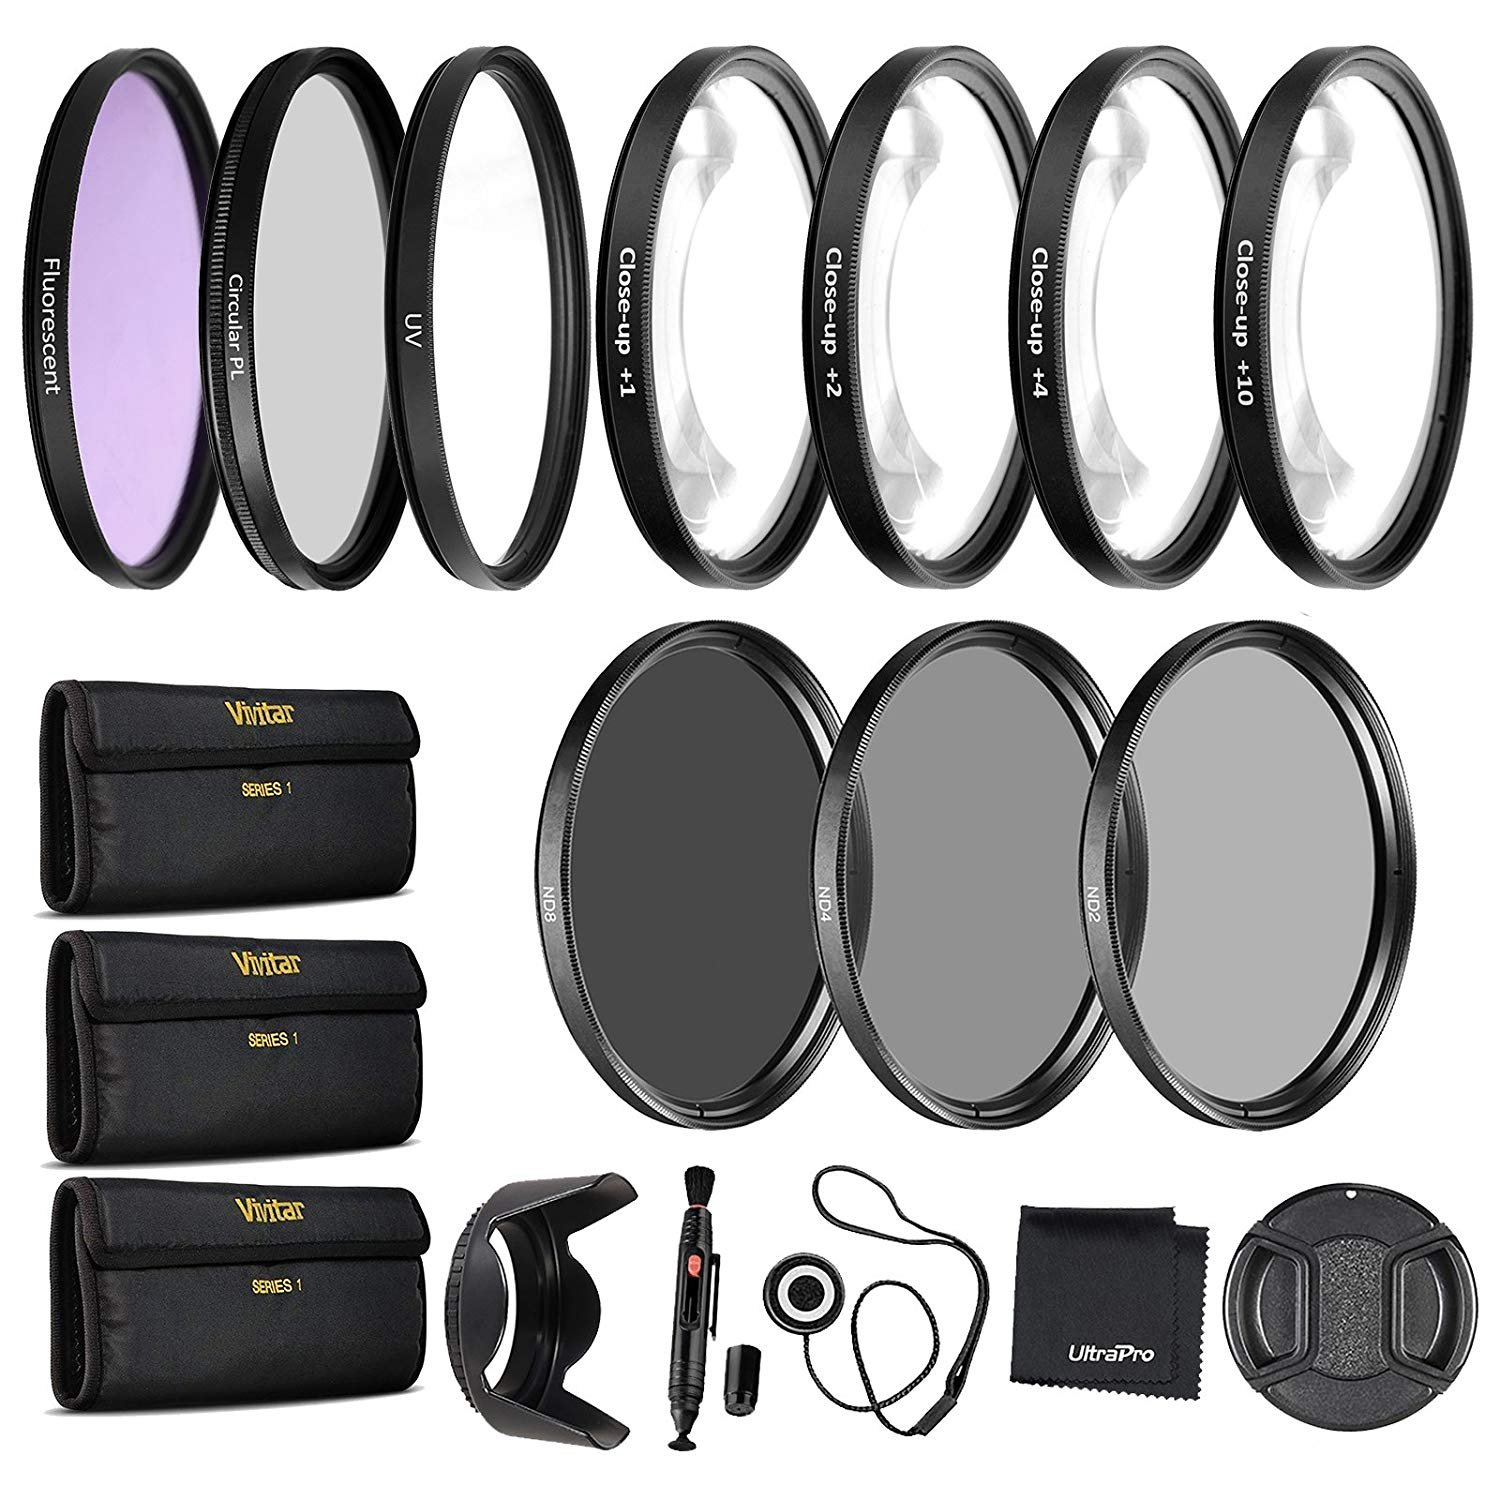 55mm Precision 10-PC Filter Kit Accessory Bundle - Includes UV, CPL, FLD, ND2, ND4, ND8 and 4 Macro Close-up Filters, Lens Hood, Cap, Cases and More by UltraPro